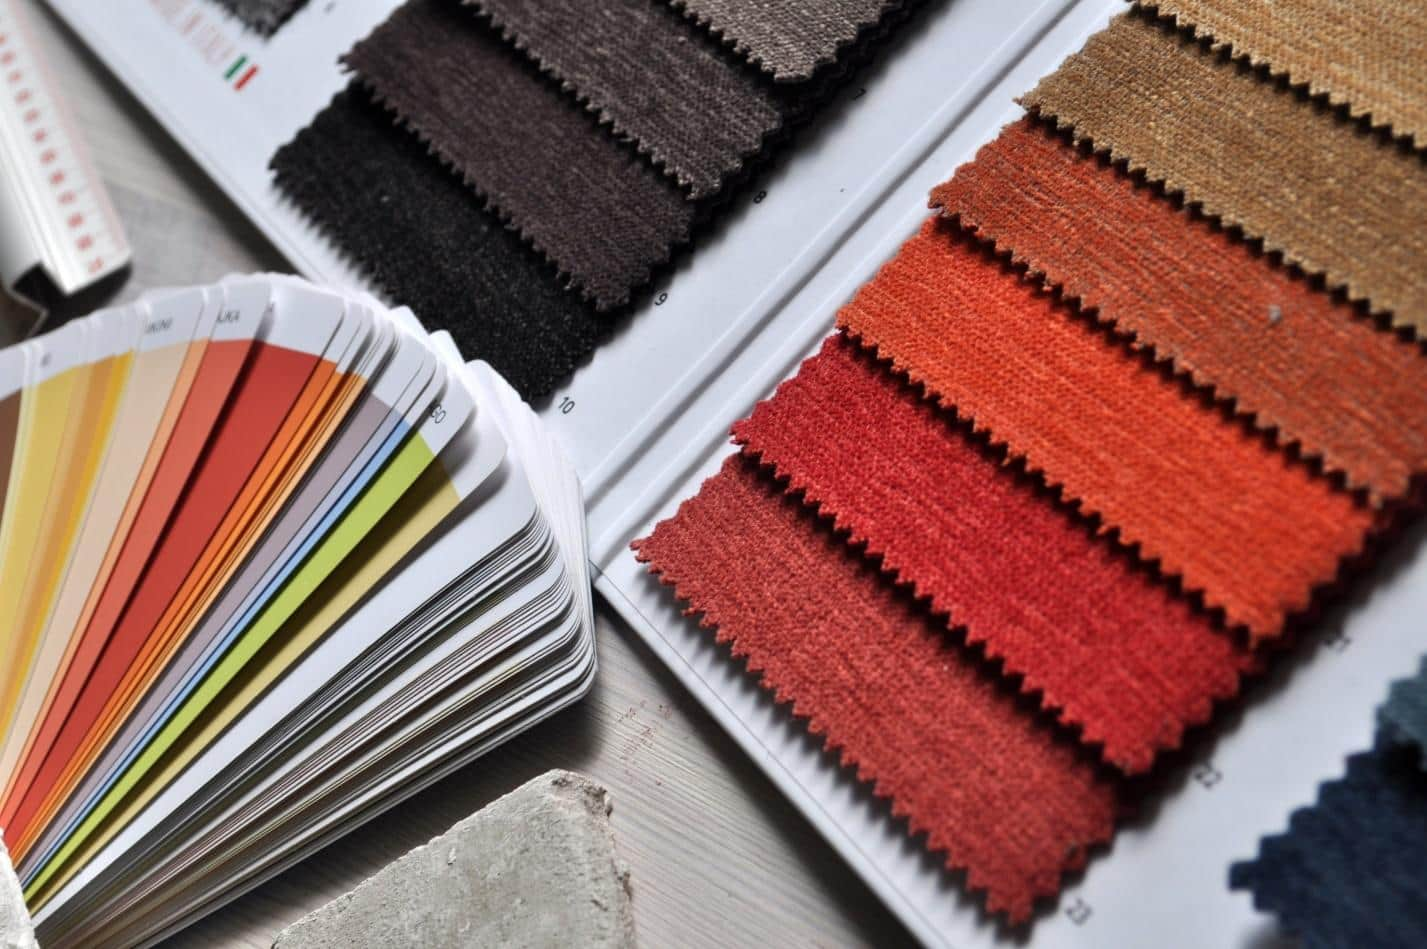 5 Best Design Courses for Students. Interior finishing materials' testers